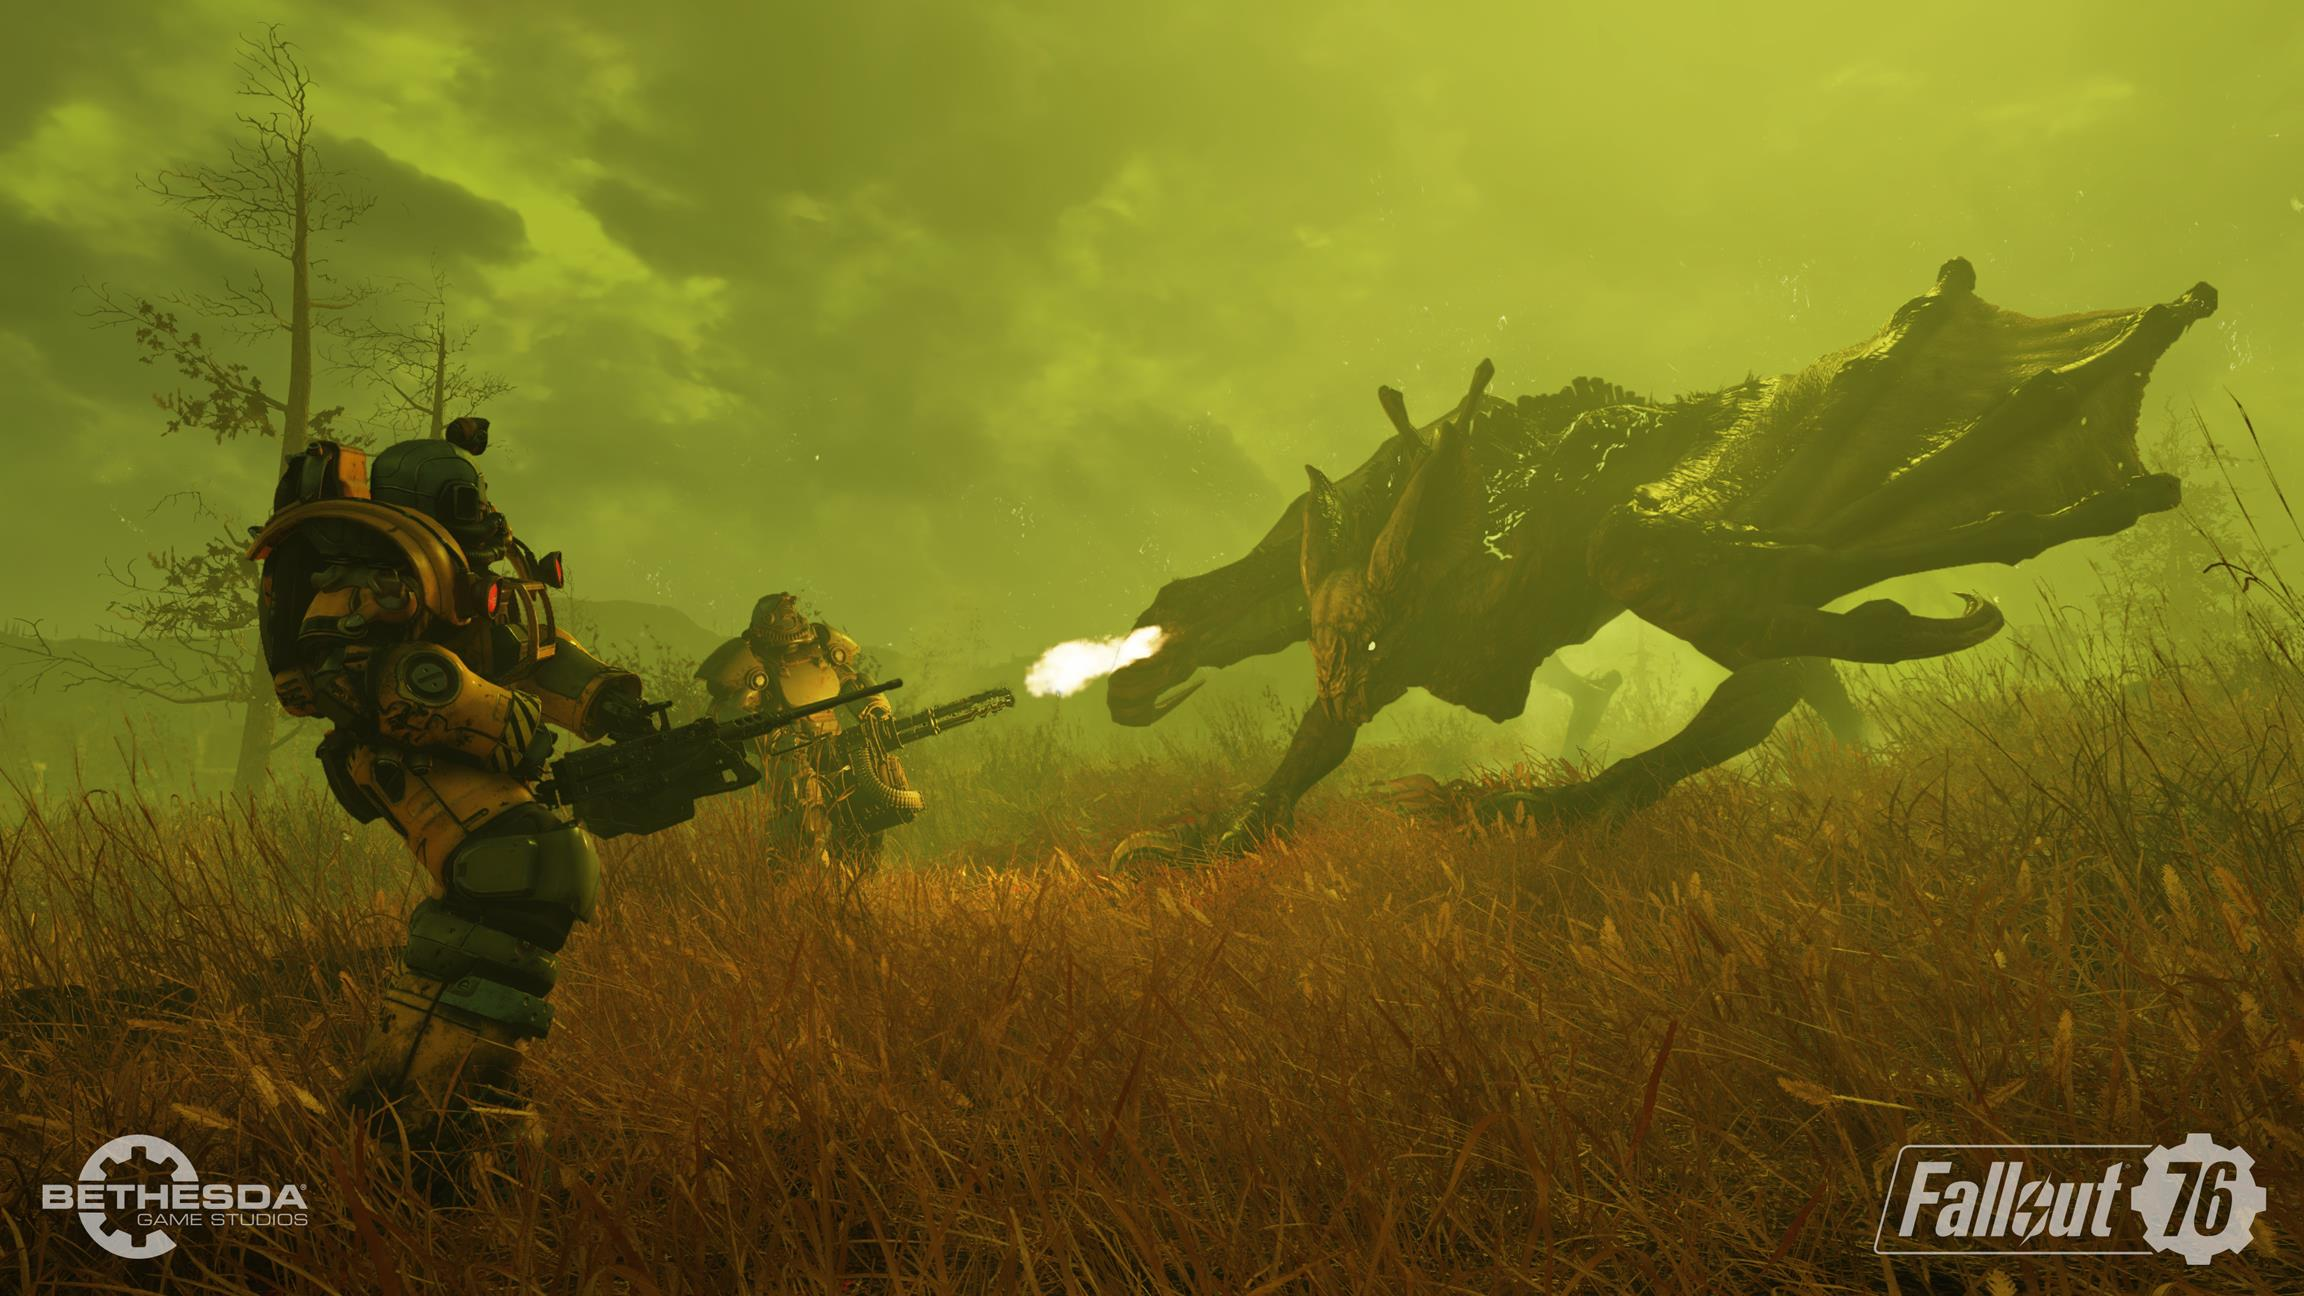 Fallout 76s Holotape Series Tales From The West Virginia Hills Are A Fun Listen